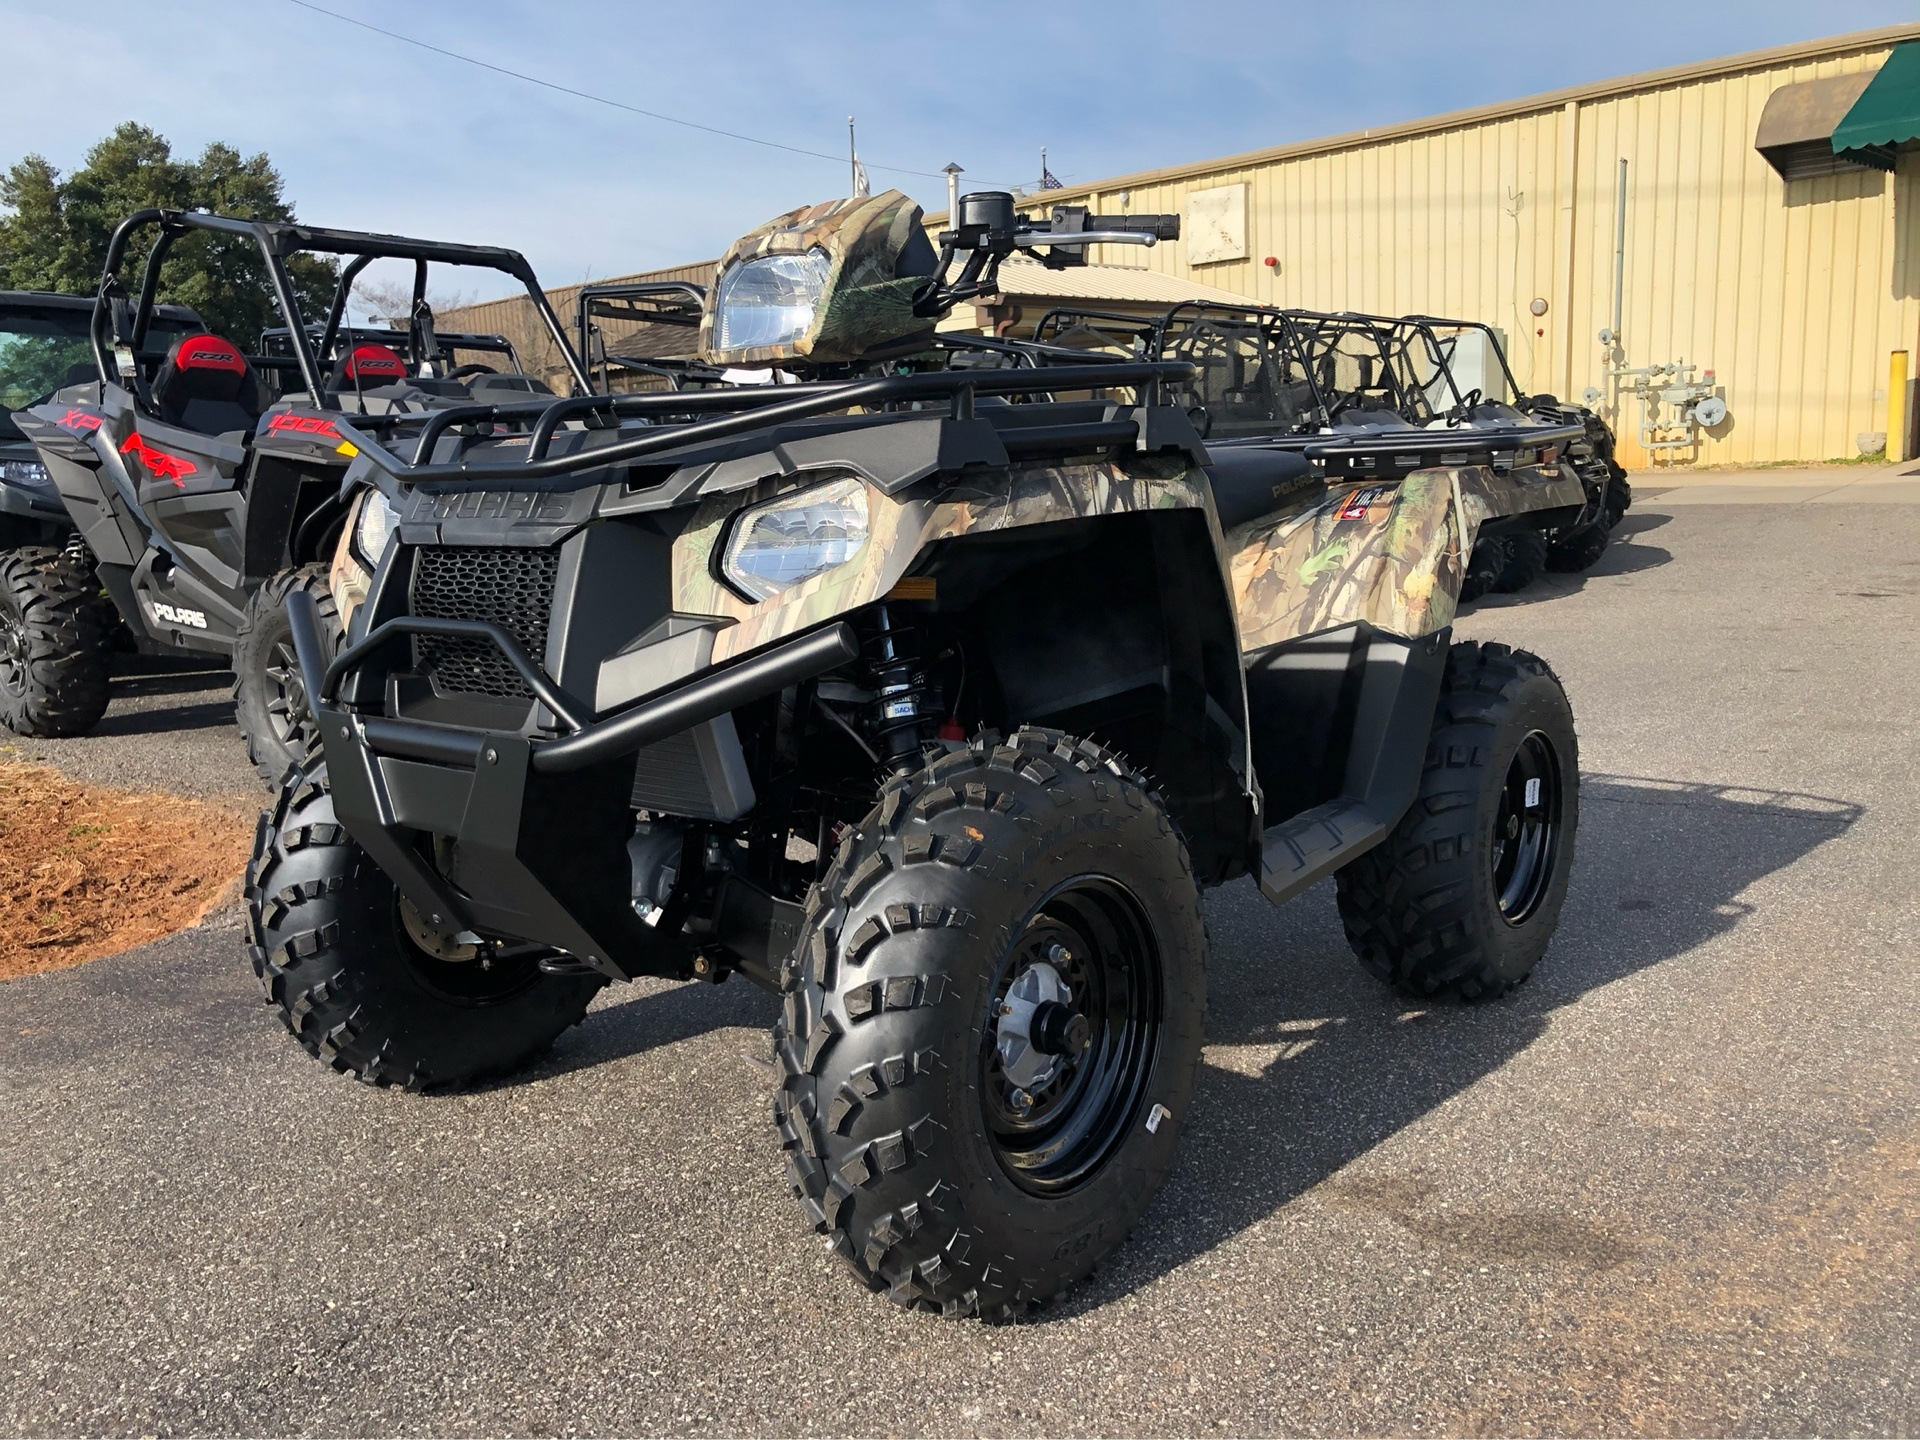 2020 Polaris Sportsman 570 EPS Utility Package in Statesville, North Carolina - Photo 2